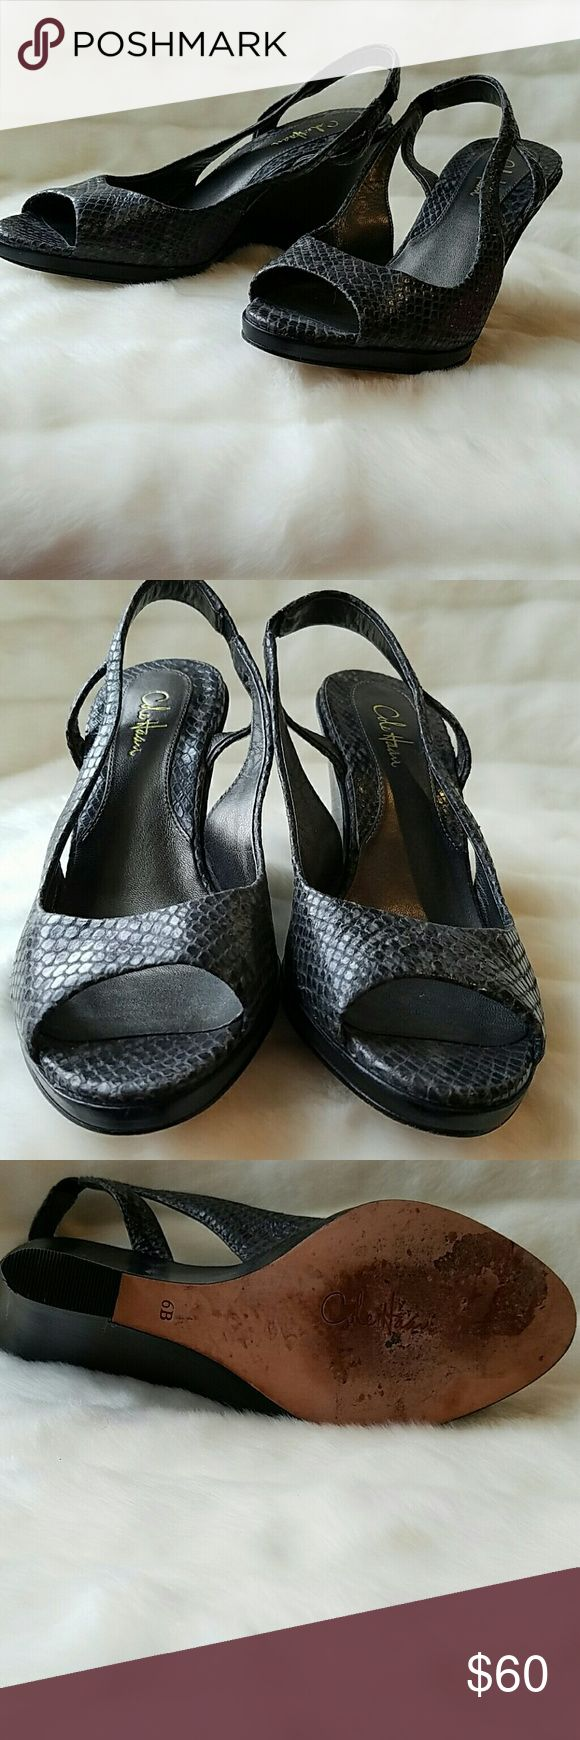 Cole Haan grey leather wedge slingback sandal. 6 Cole Haan grey leather wedge slingback sandal. 6 Cole Haan Shoes Wedges